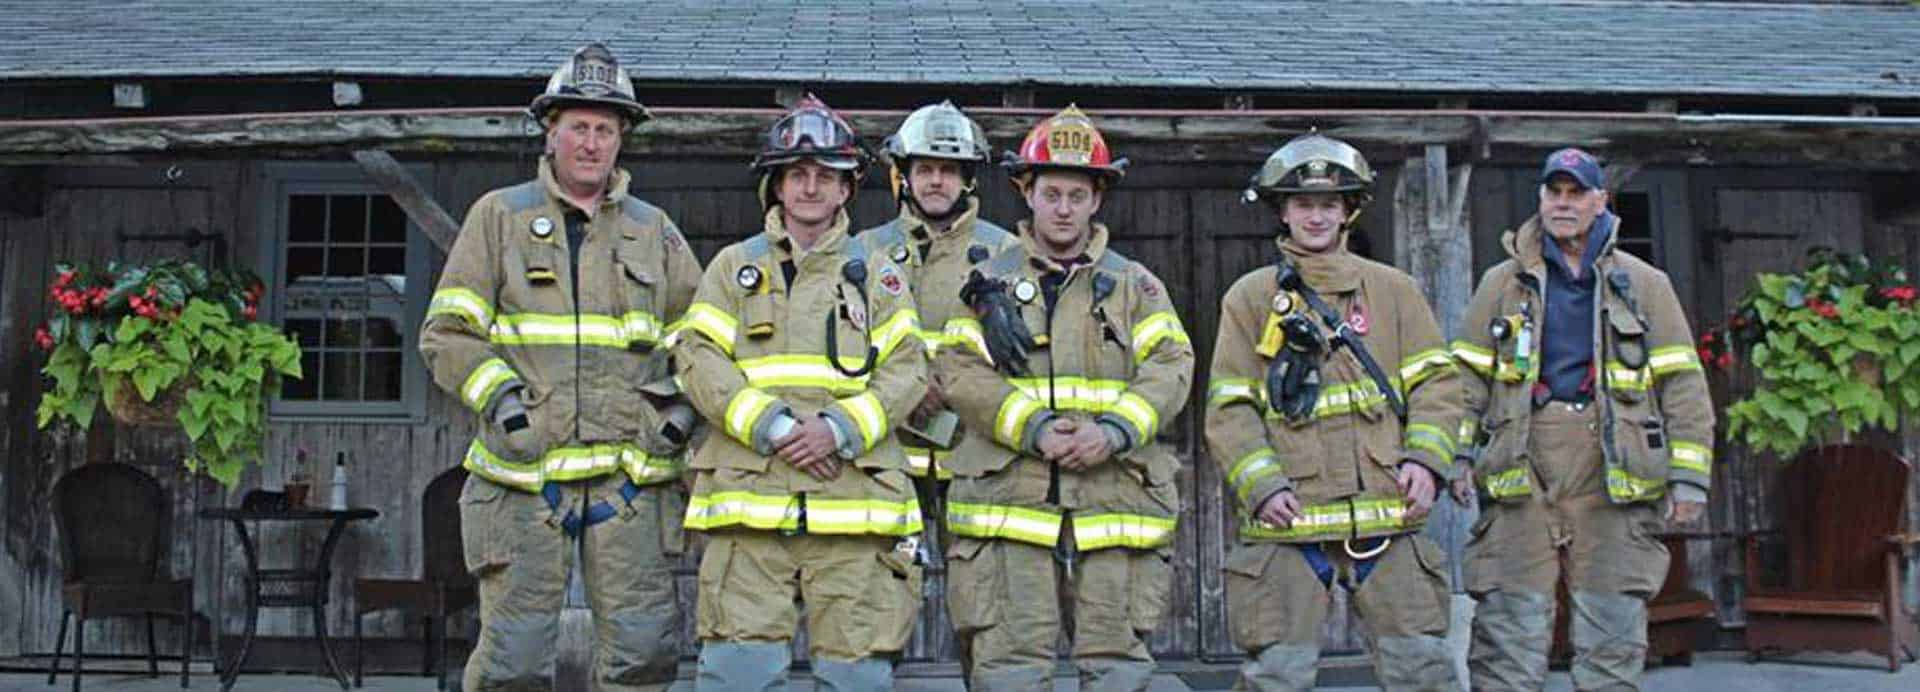 Dorset Fire Fighters